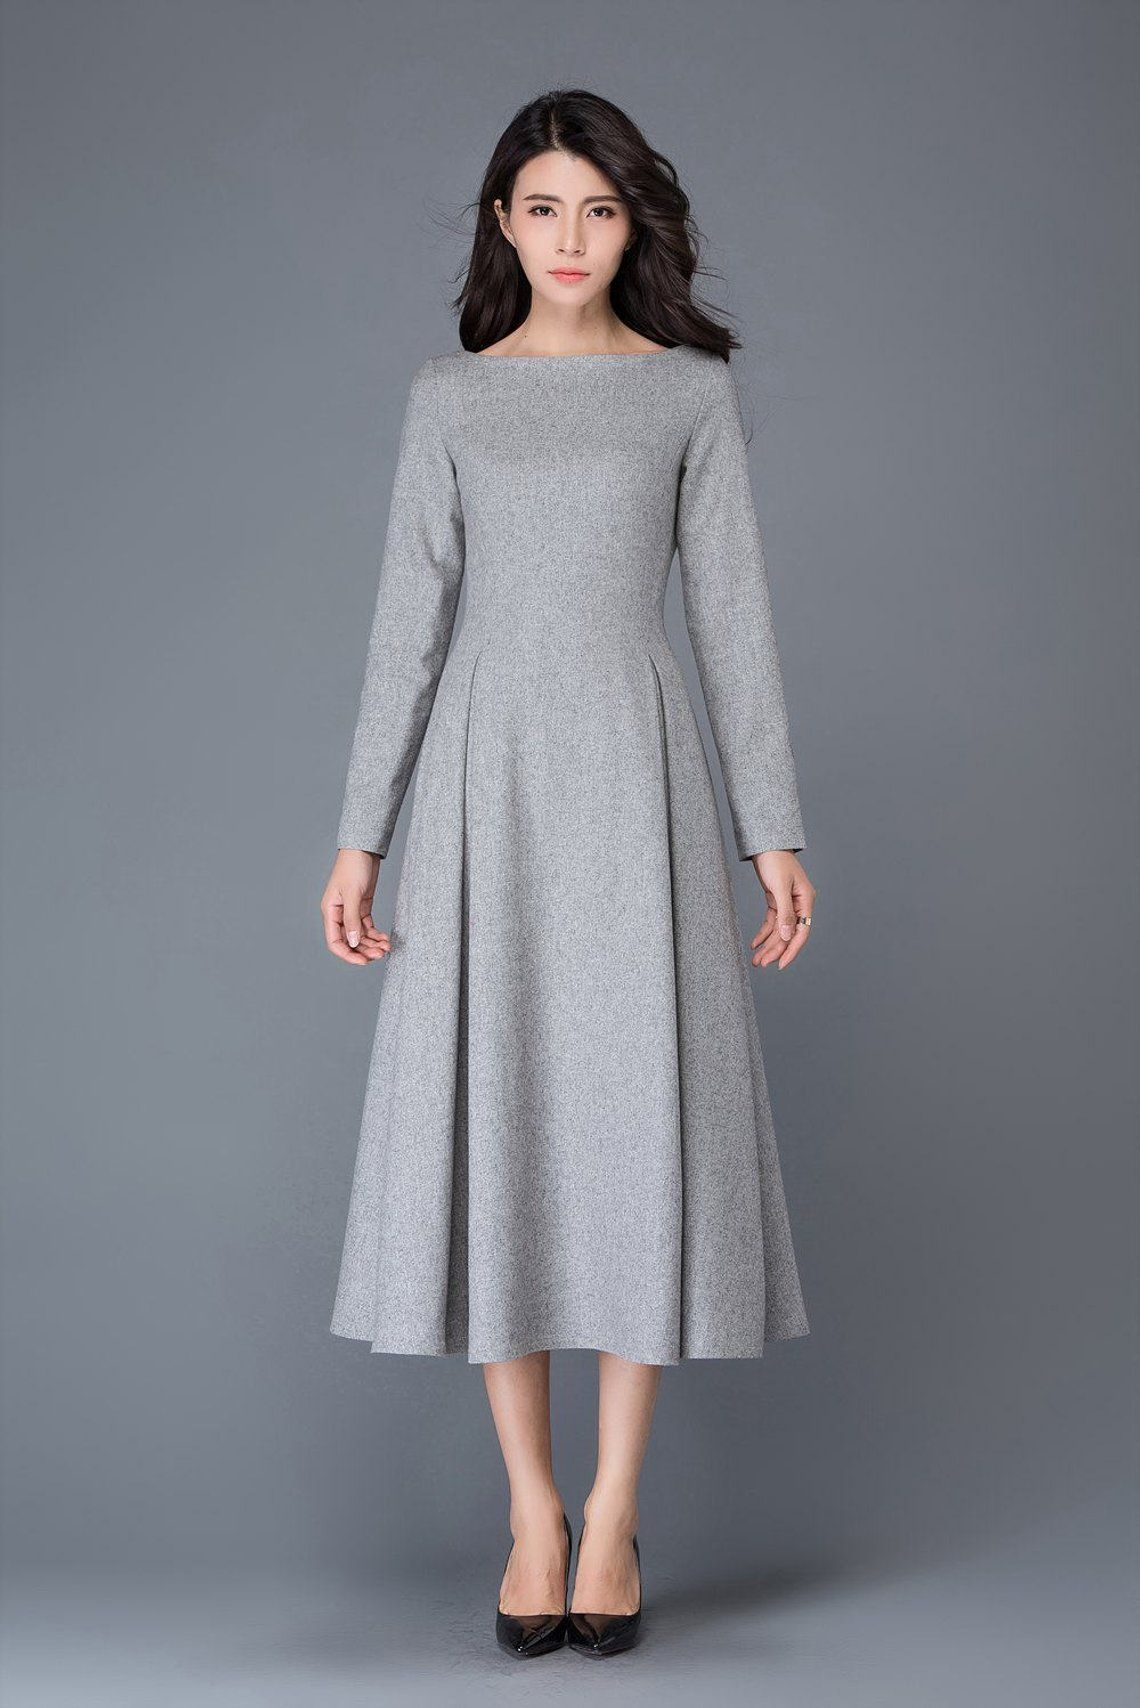 2c5cf211ac1d65 womens dress, wool dress, winter dress, gray wool dress, boat neck ...